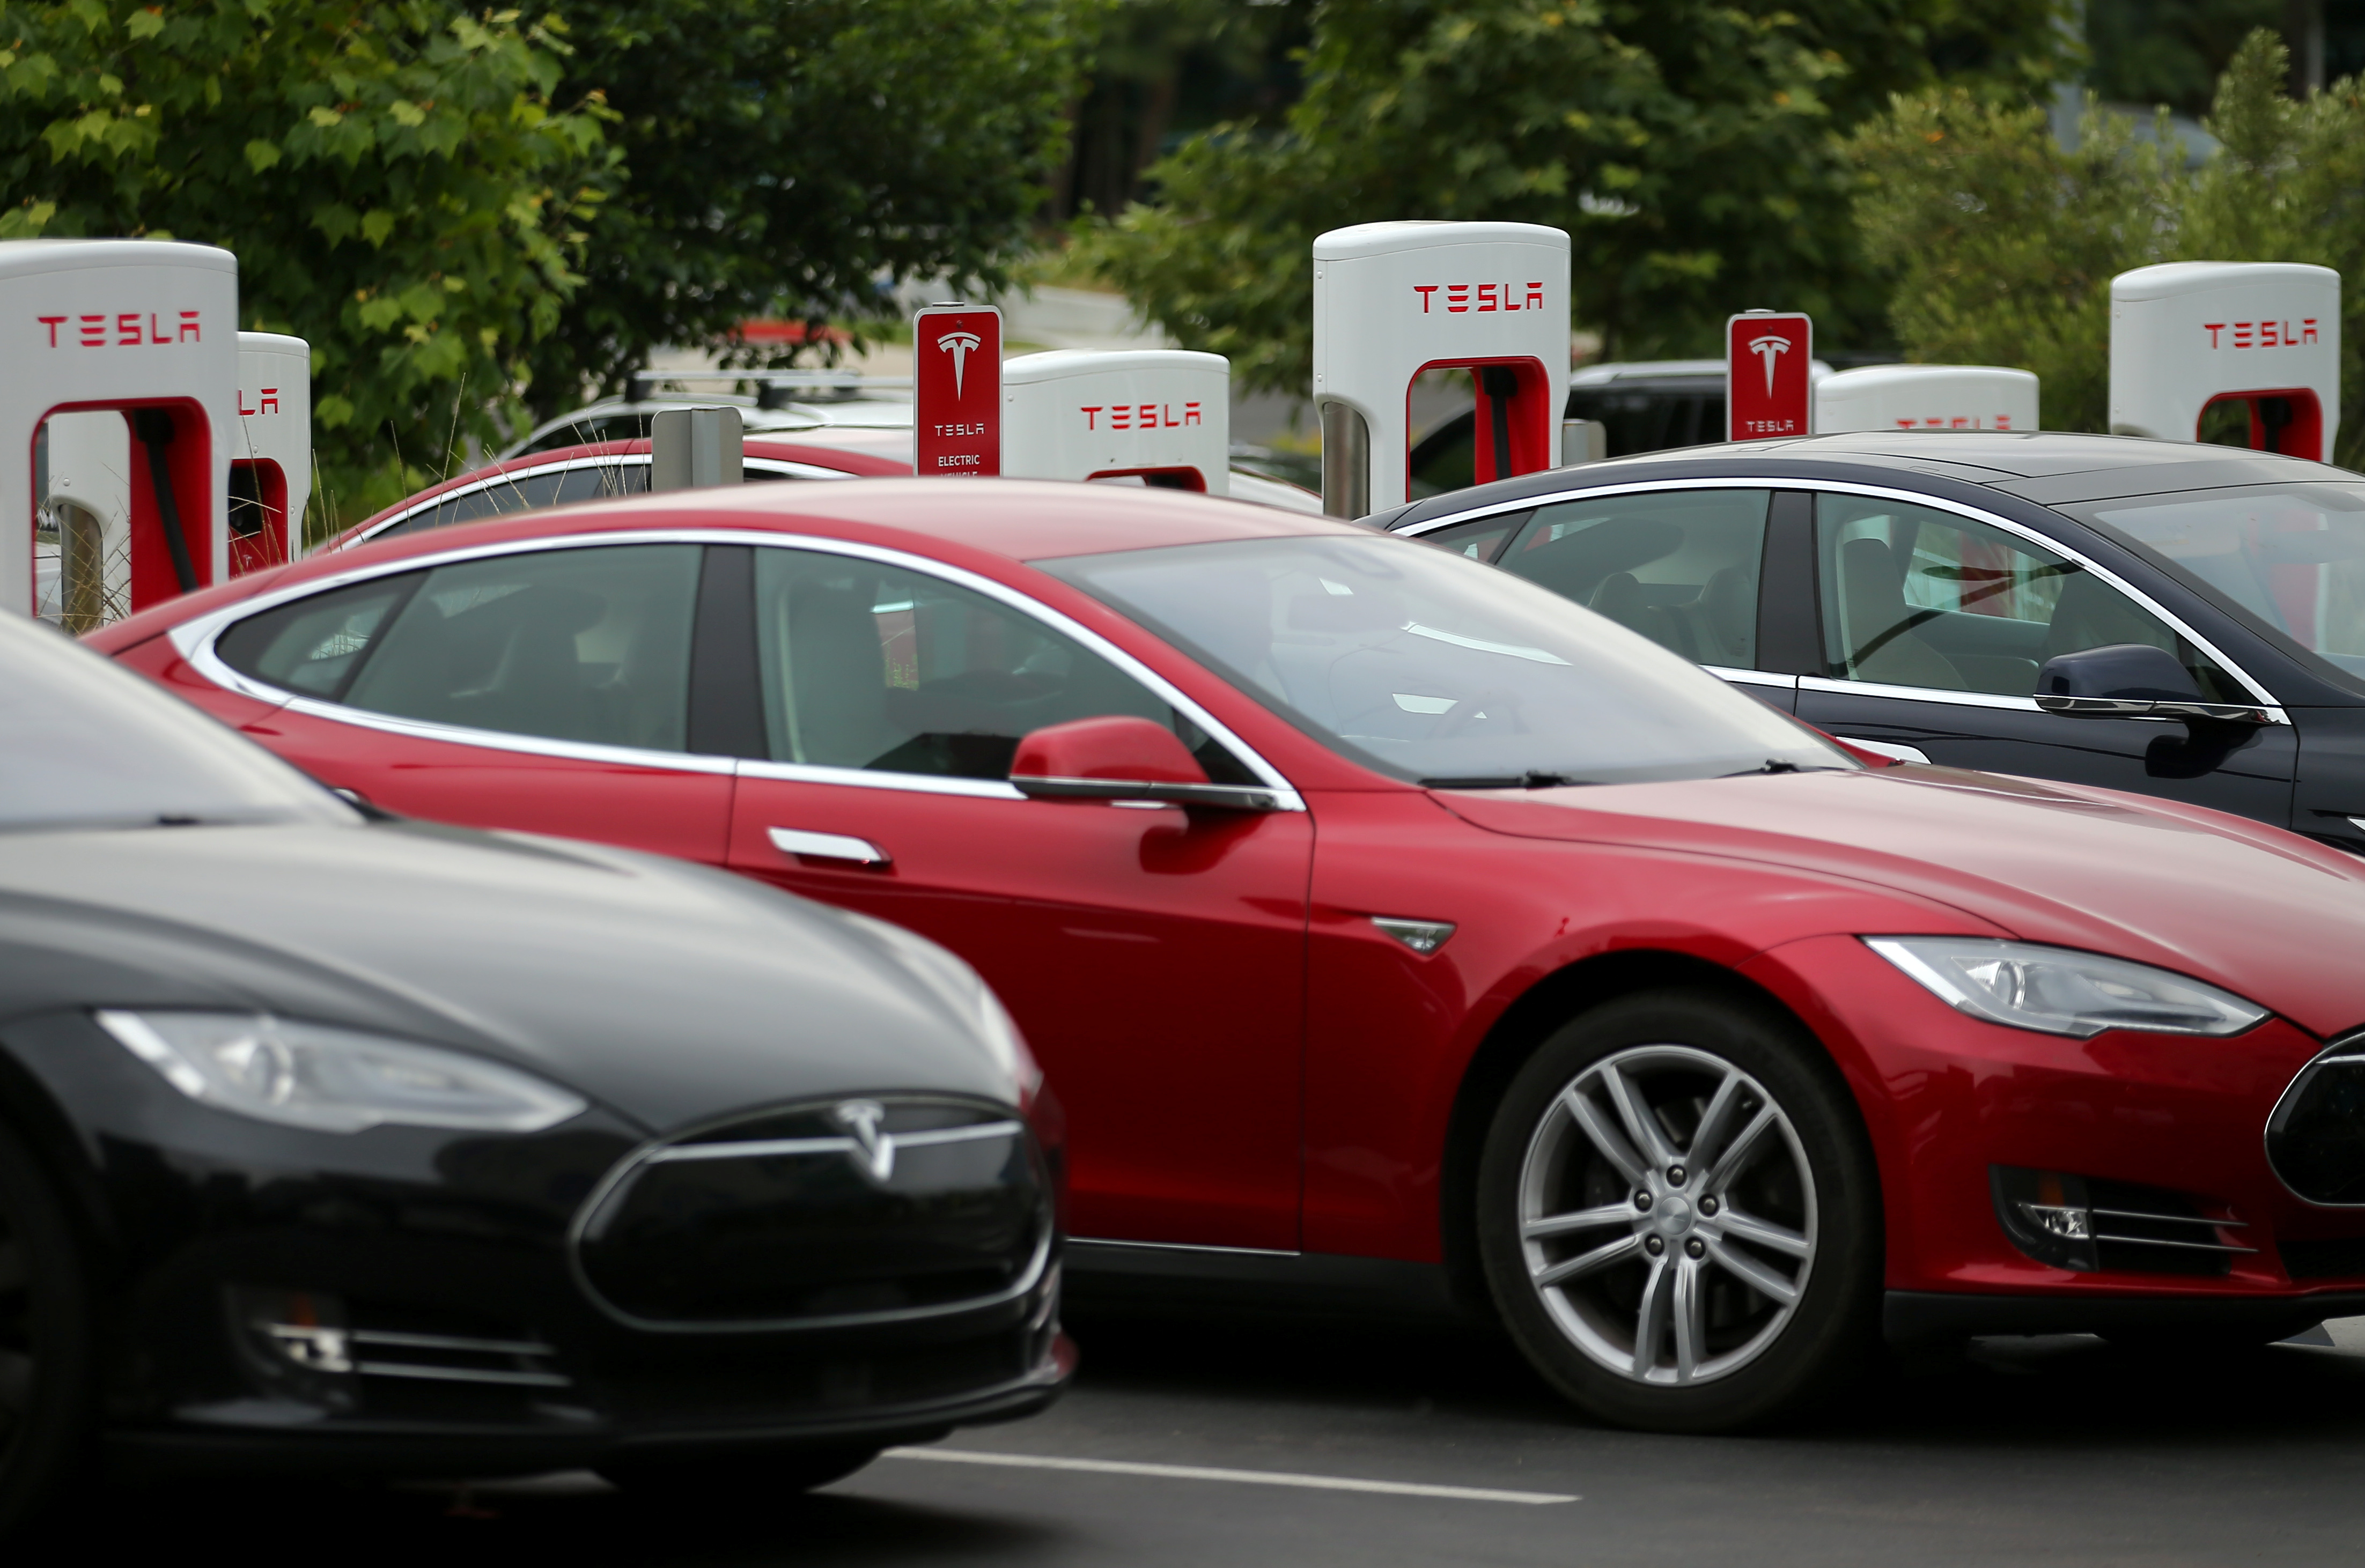 Tesla vehicles charge at a Tesla Supercharger station on the Qualcomm campus in San Diego